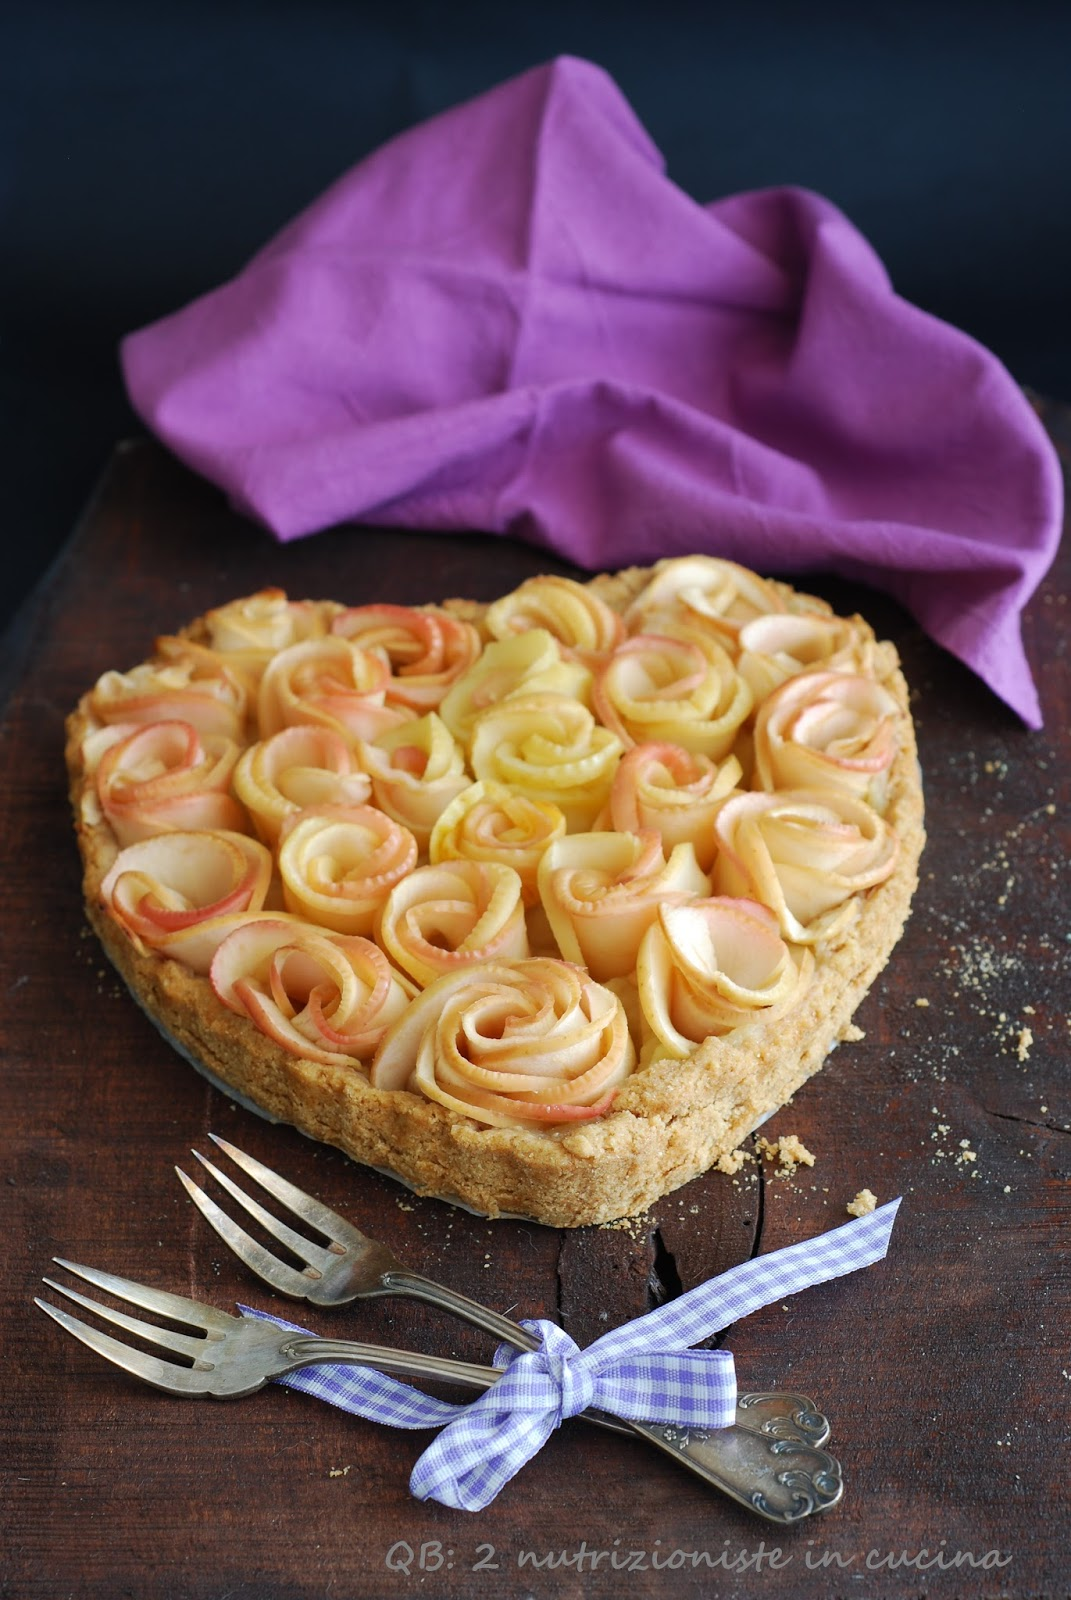 Crostata di rose di mele